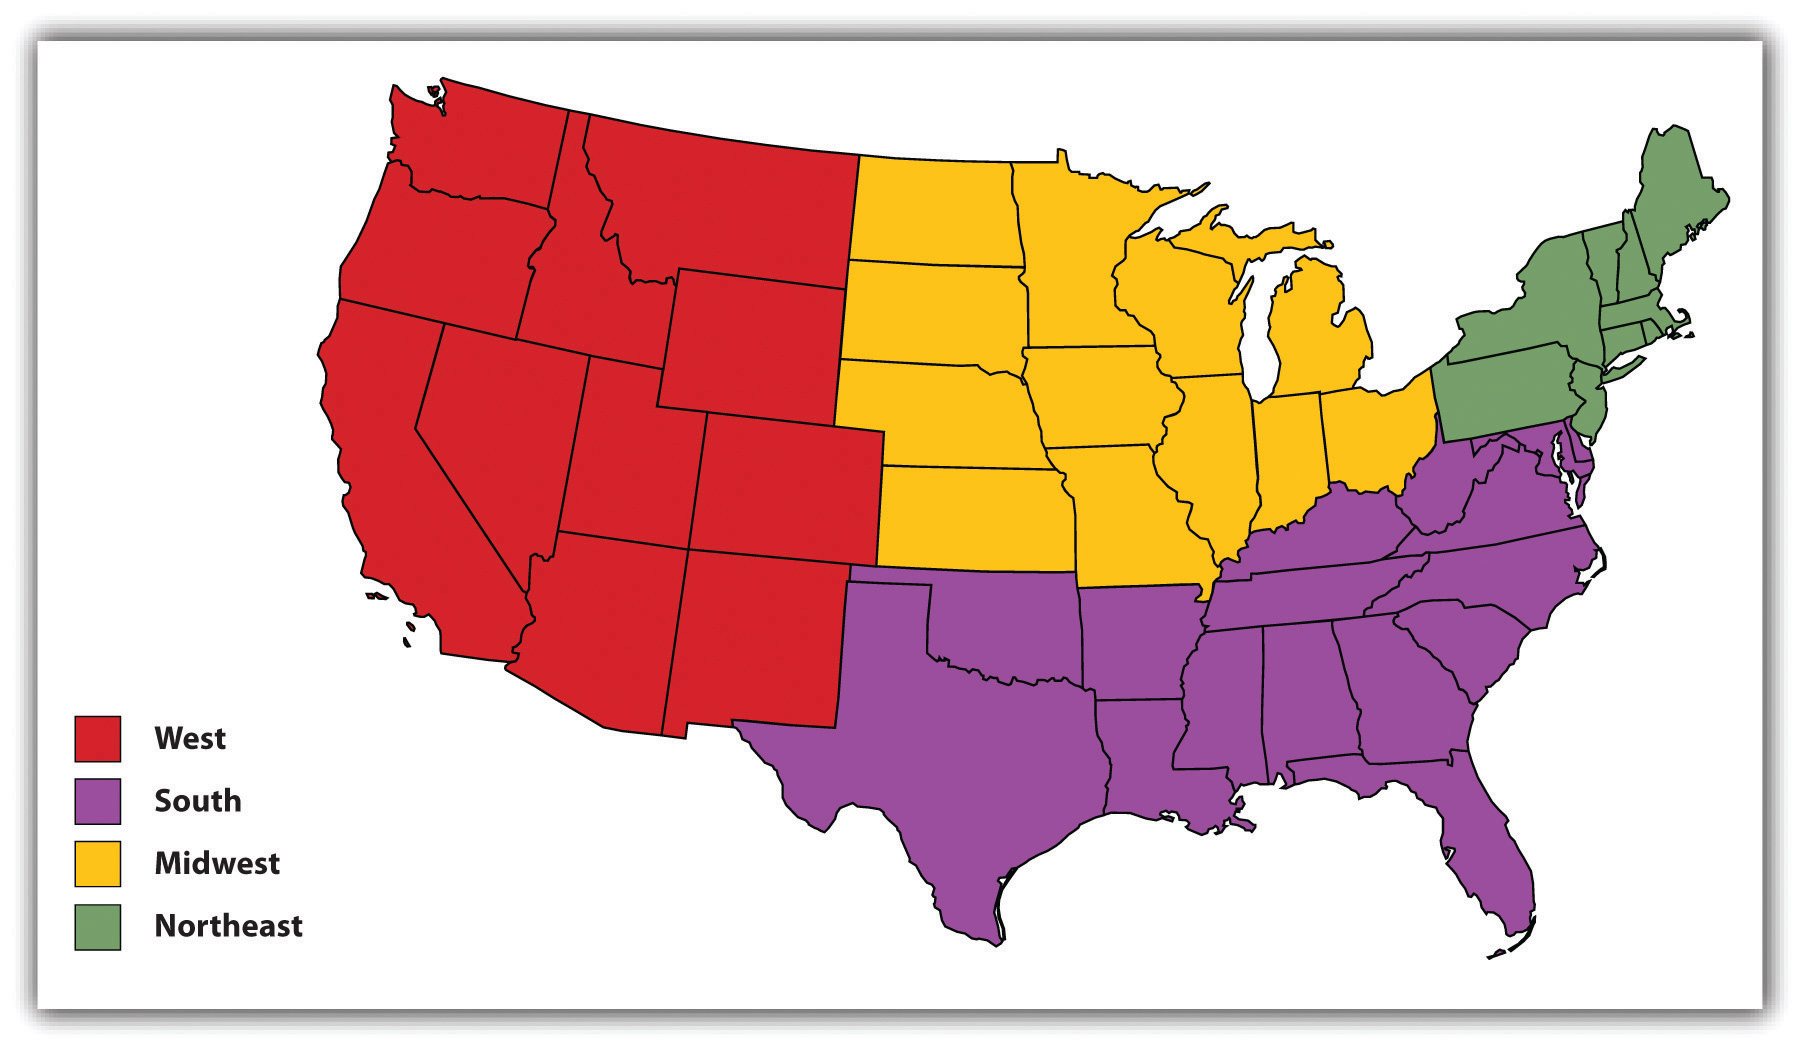 The US separated into sections: west, south, midwest, and northeast